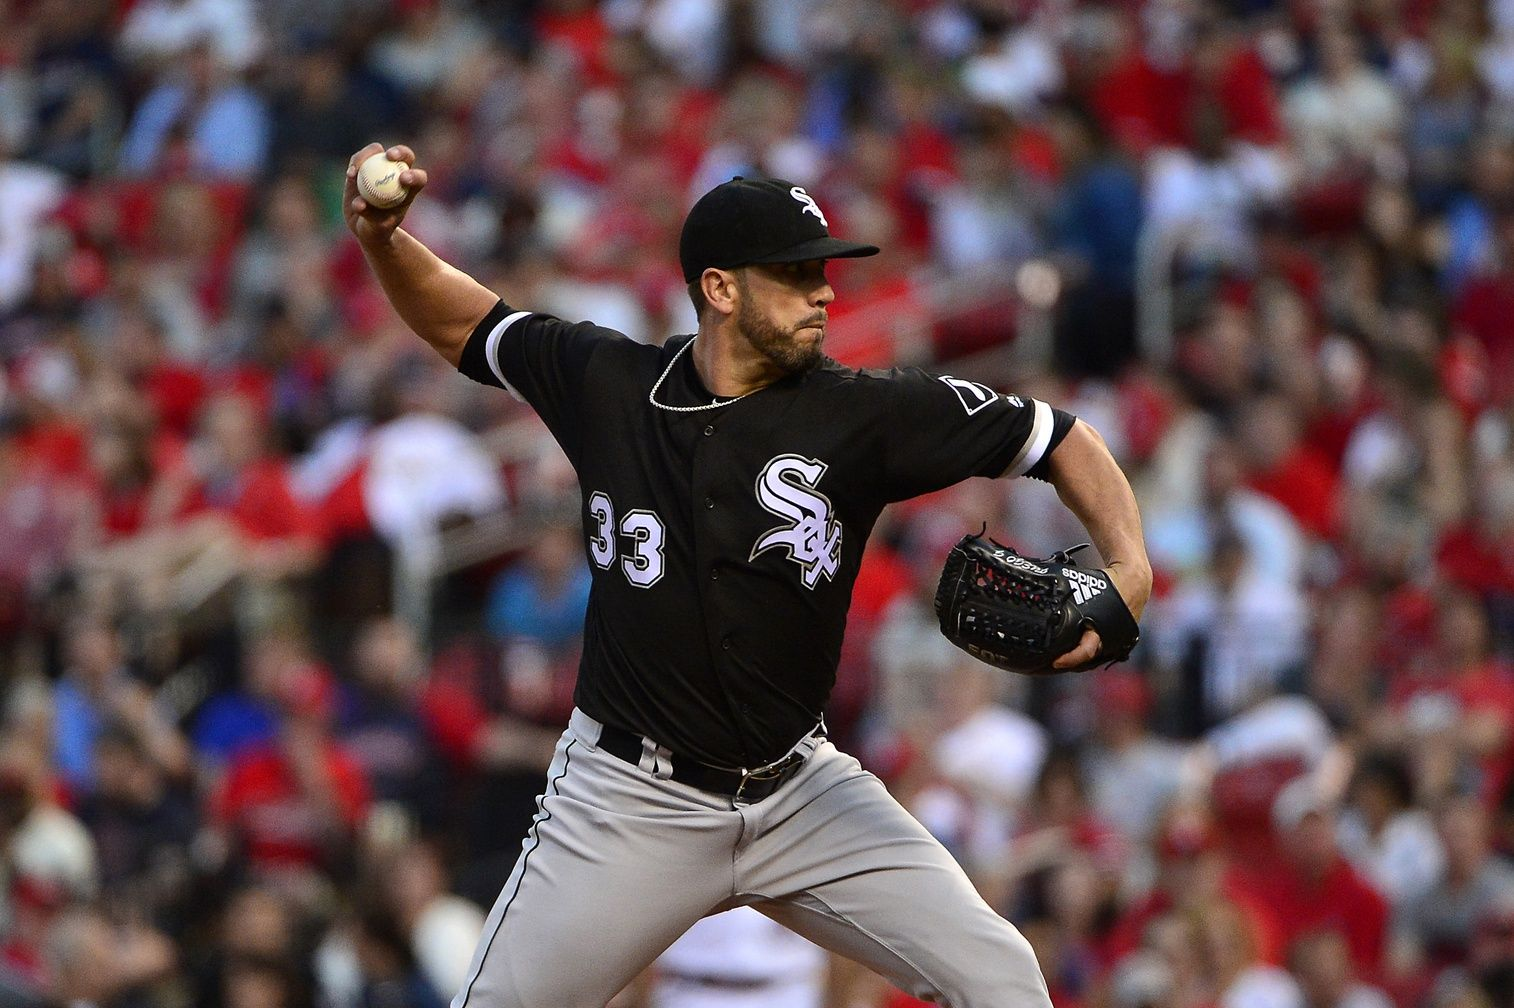 SOXCardinals come from behind and win vs. White Sox 32